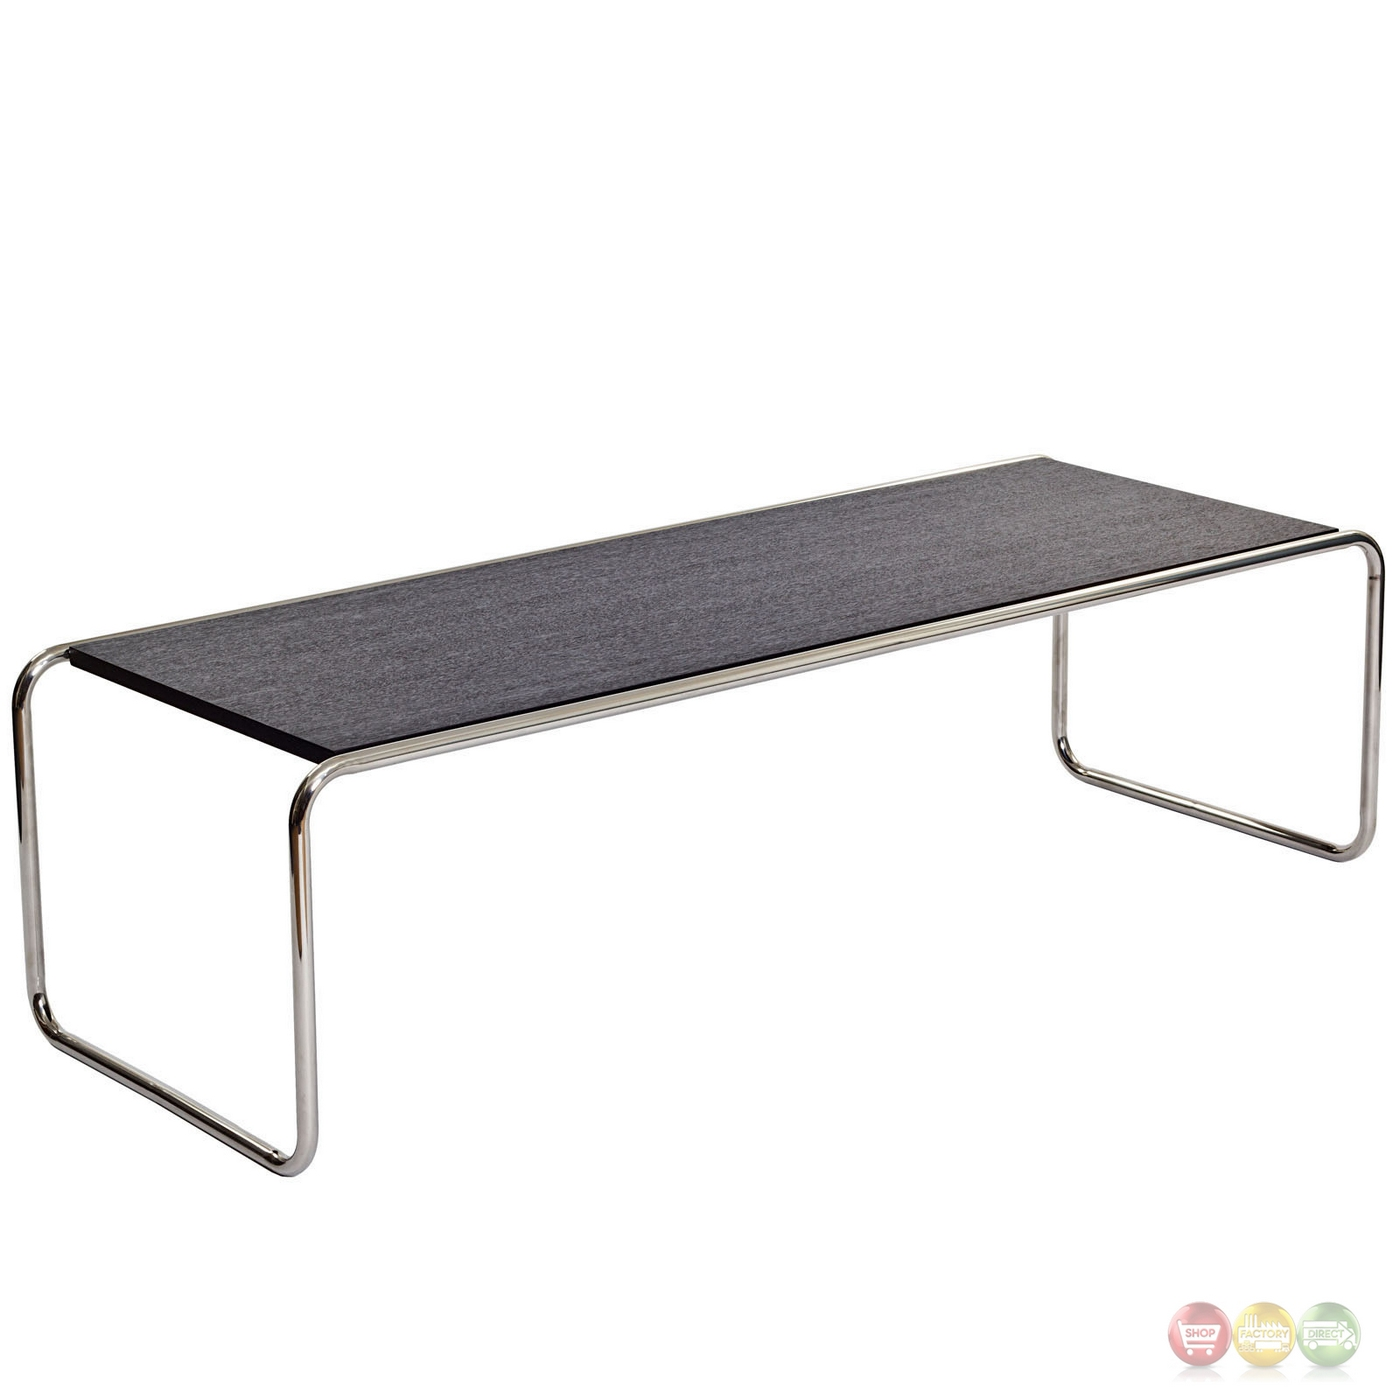 Blox contemporary wood top nesting coffee table with for Modern nesting coffee tables